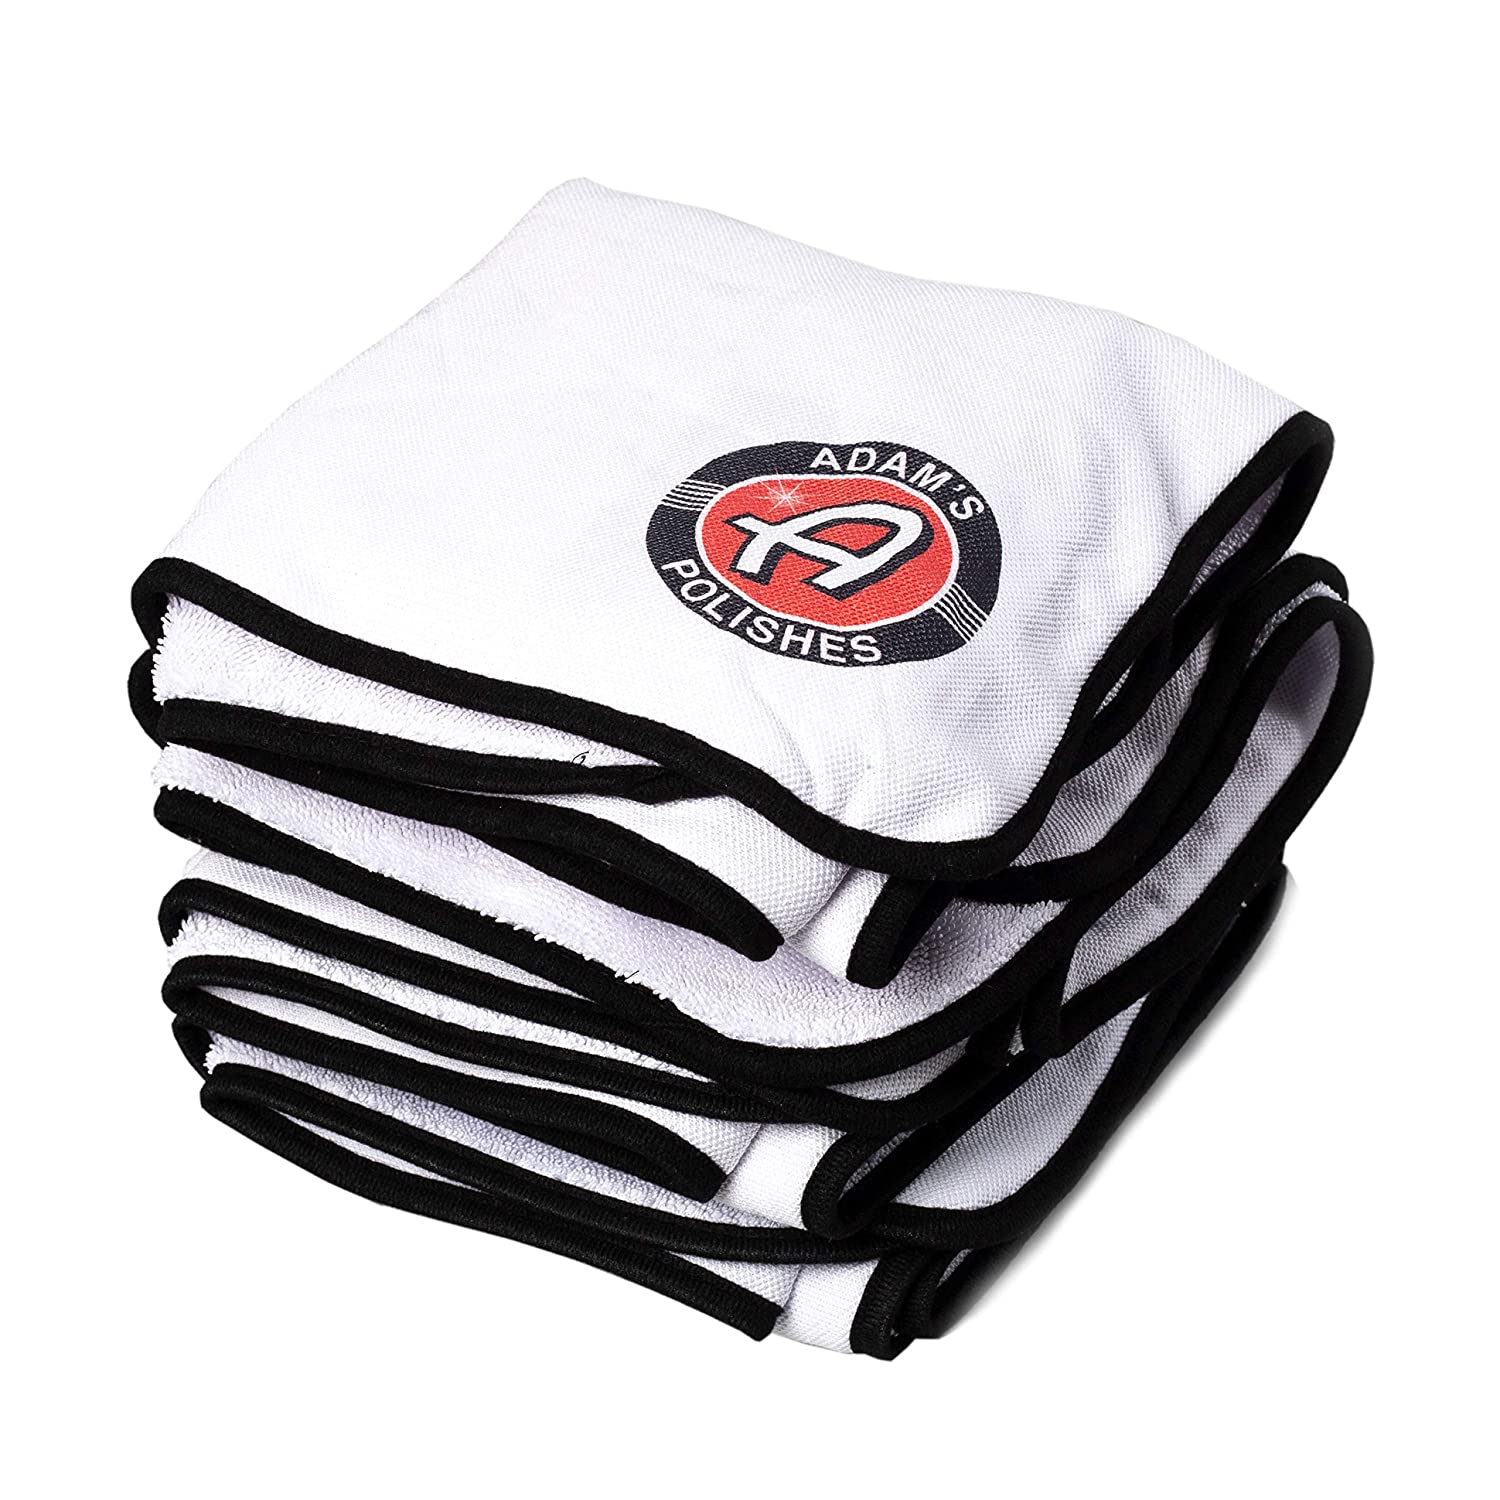 Adam's Ultra Plush Drying Towel 2 Pack - Wont Scratch or Swirl Delicate Surfaces - Soft & Extremely Absorbent Microfiber Drying Towel That Will Dry Your Entire Vehicle Adam' s Polishes 4332948872